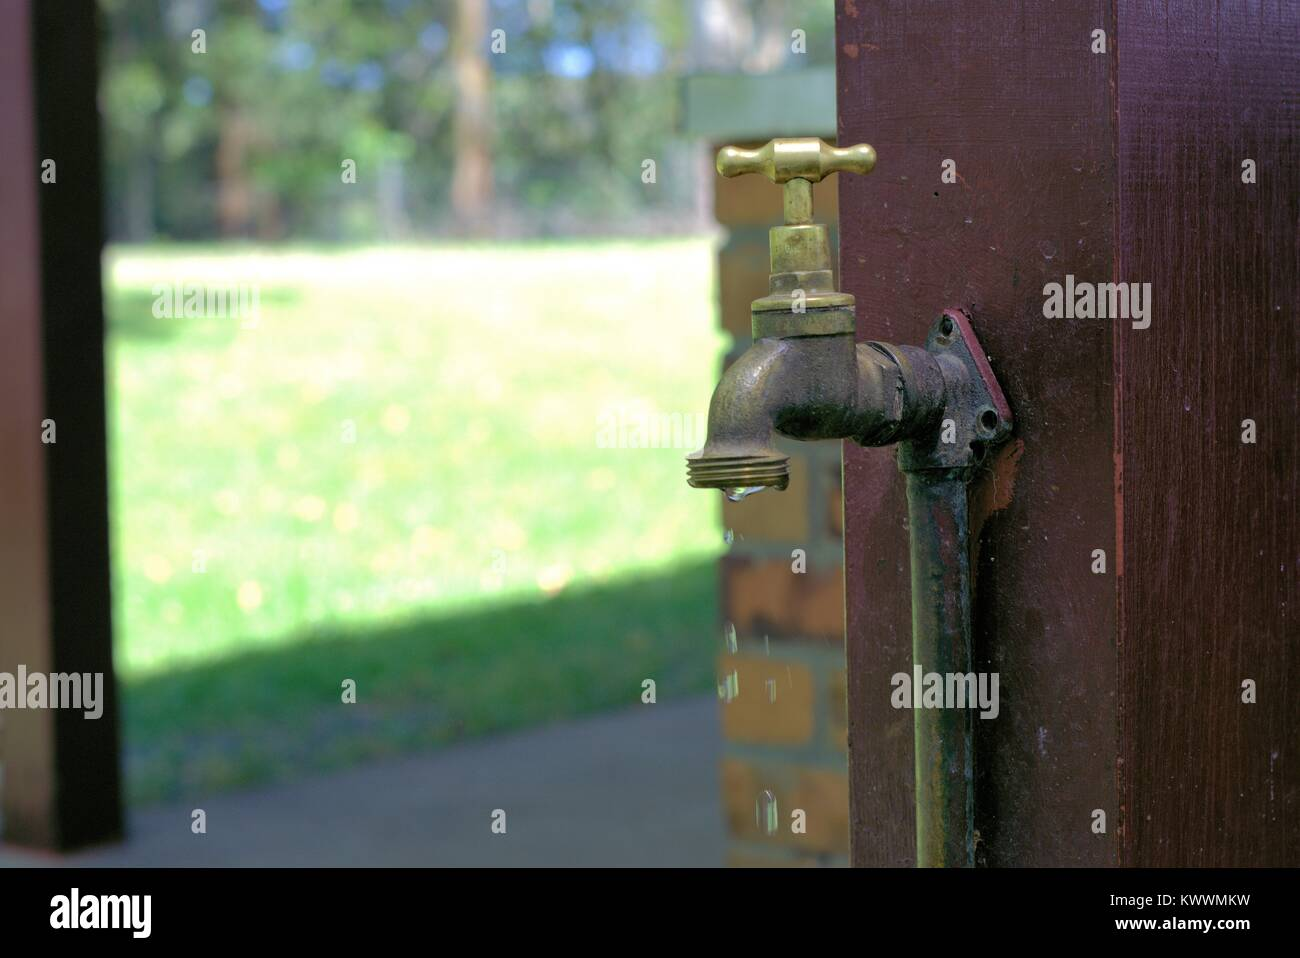 Dripping Water tap. Water leaking from tap. Water faucet. Day time Image of metal tap with running water. Water - Stock Image